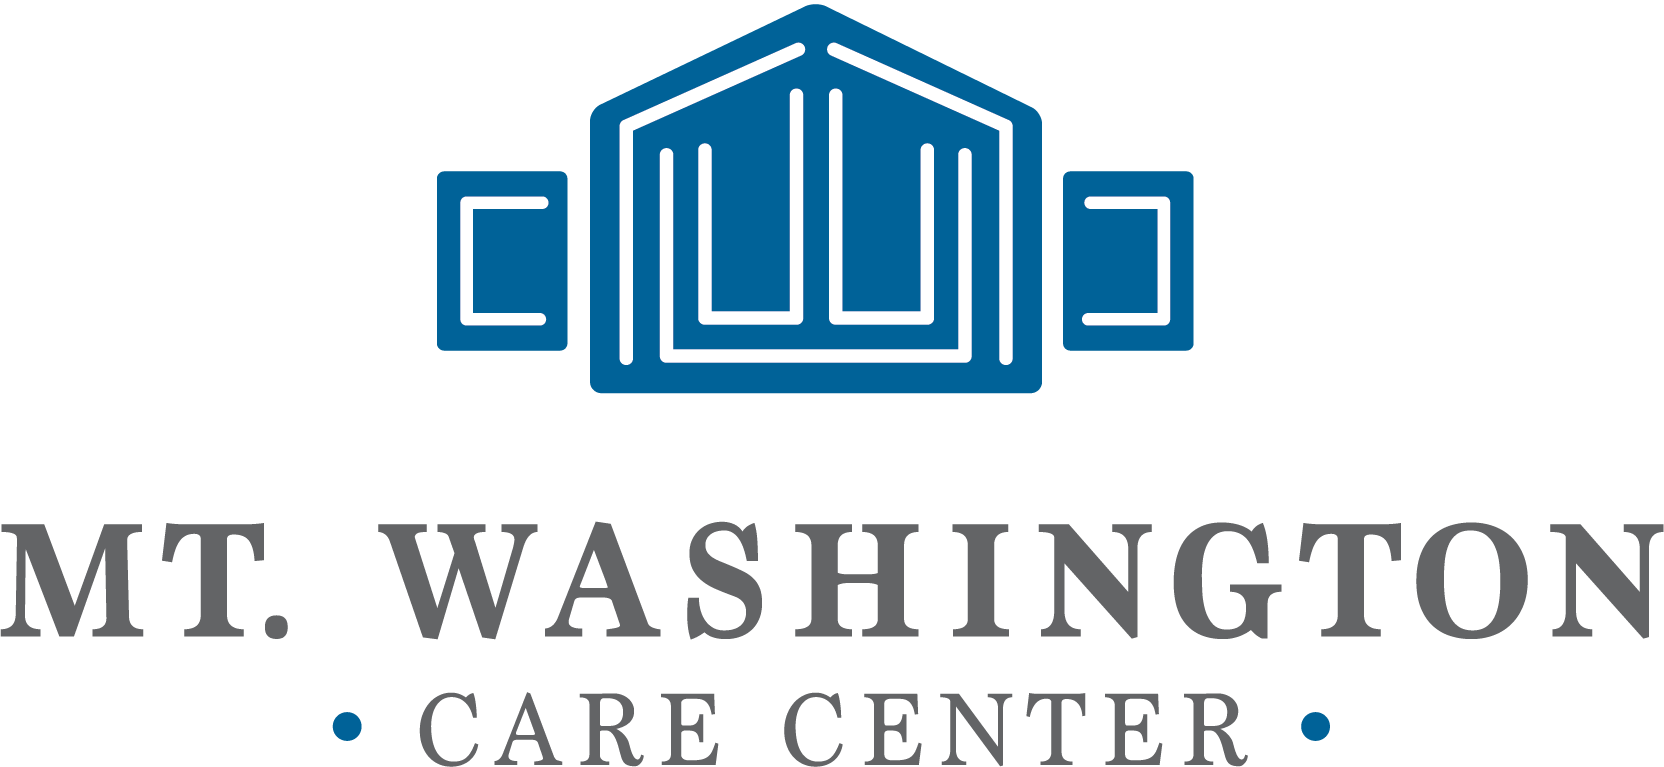 Mt Washington Care Center